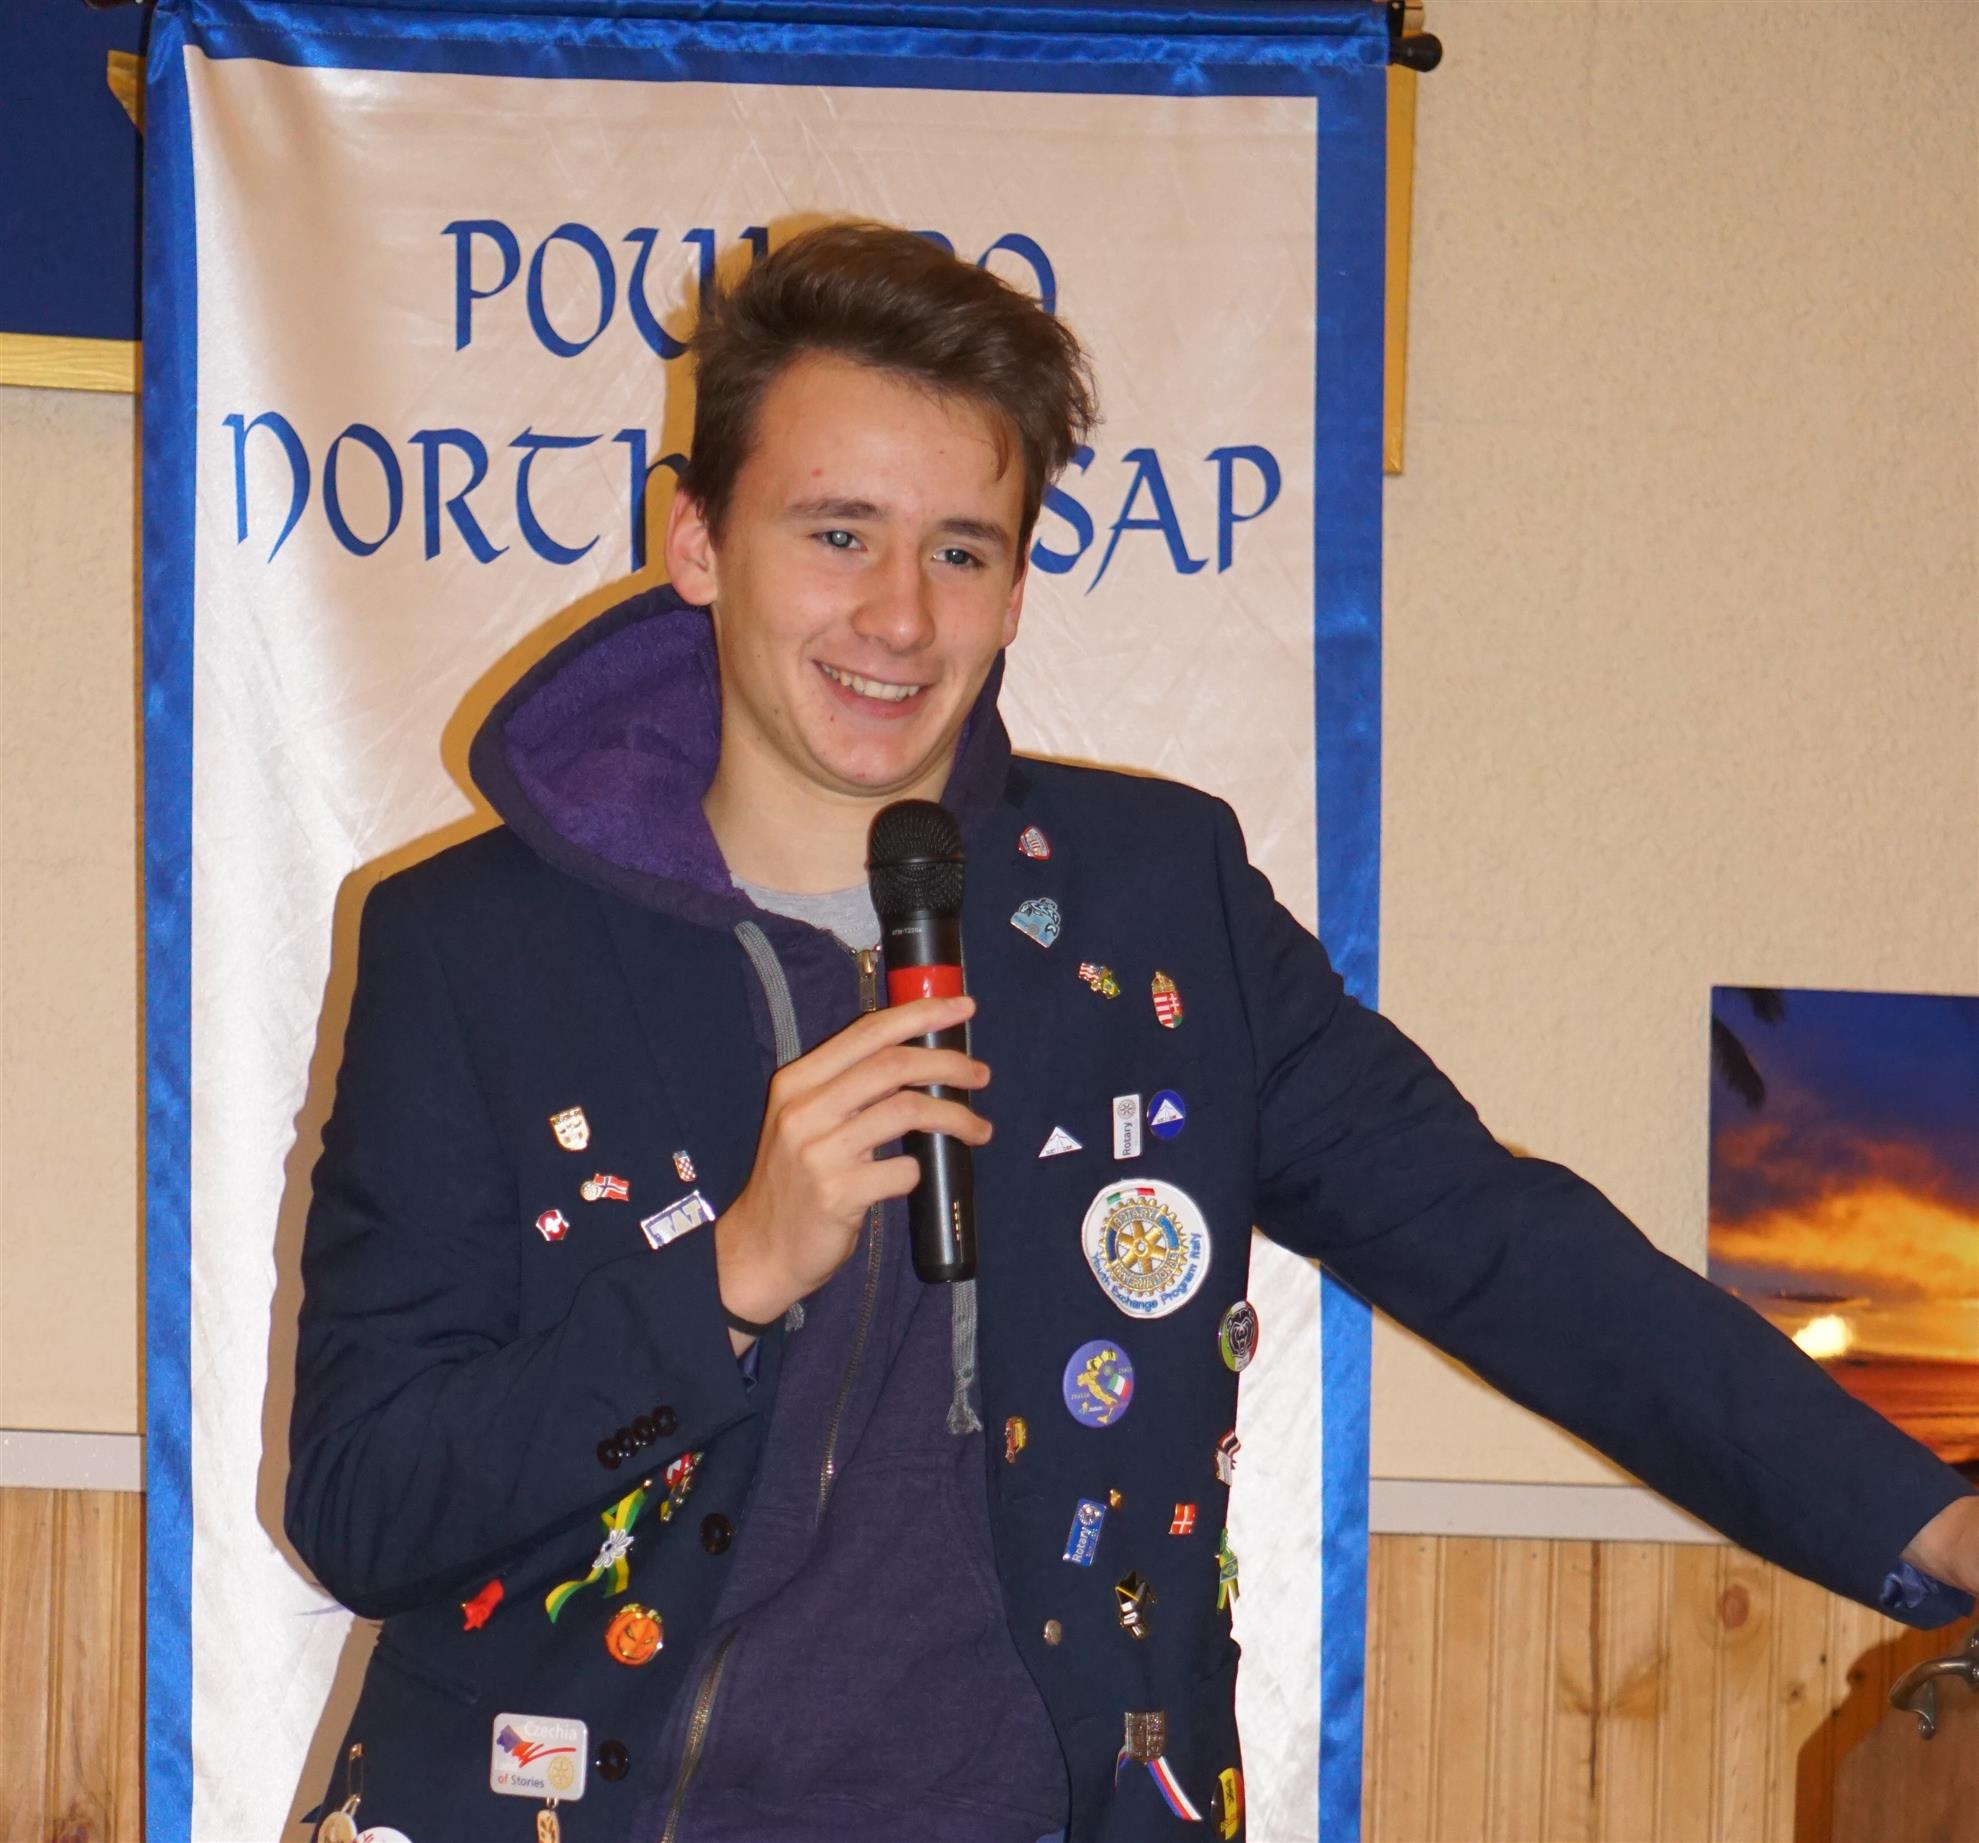 Jack, our Rotary Exchange student from Italy